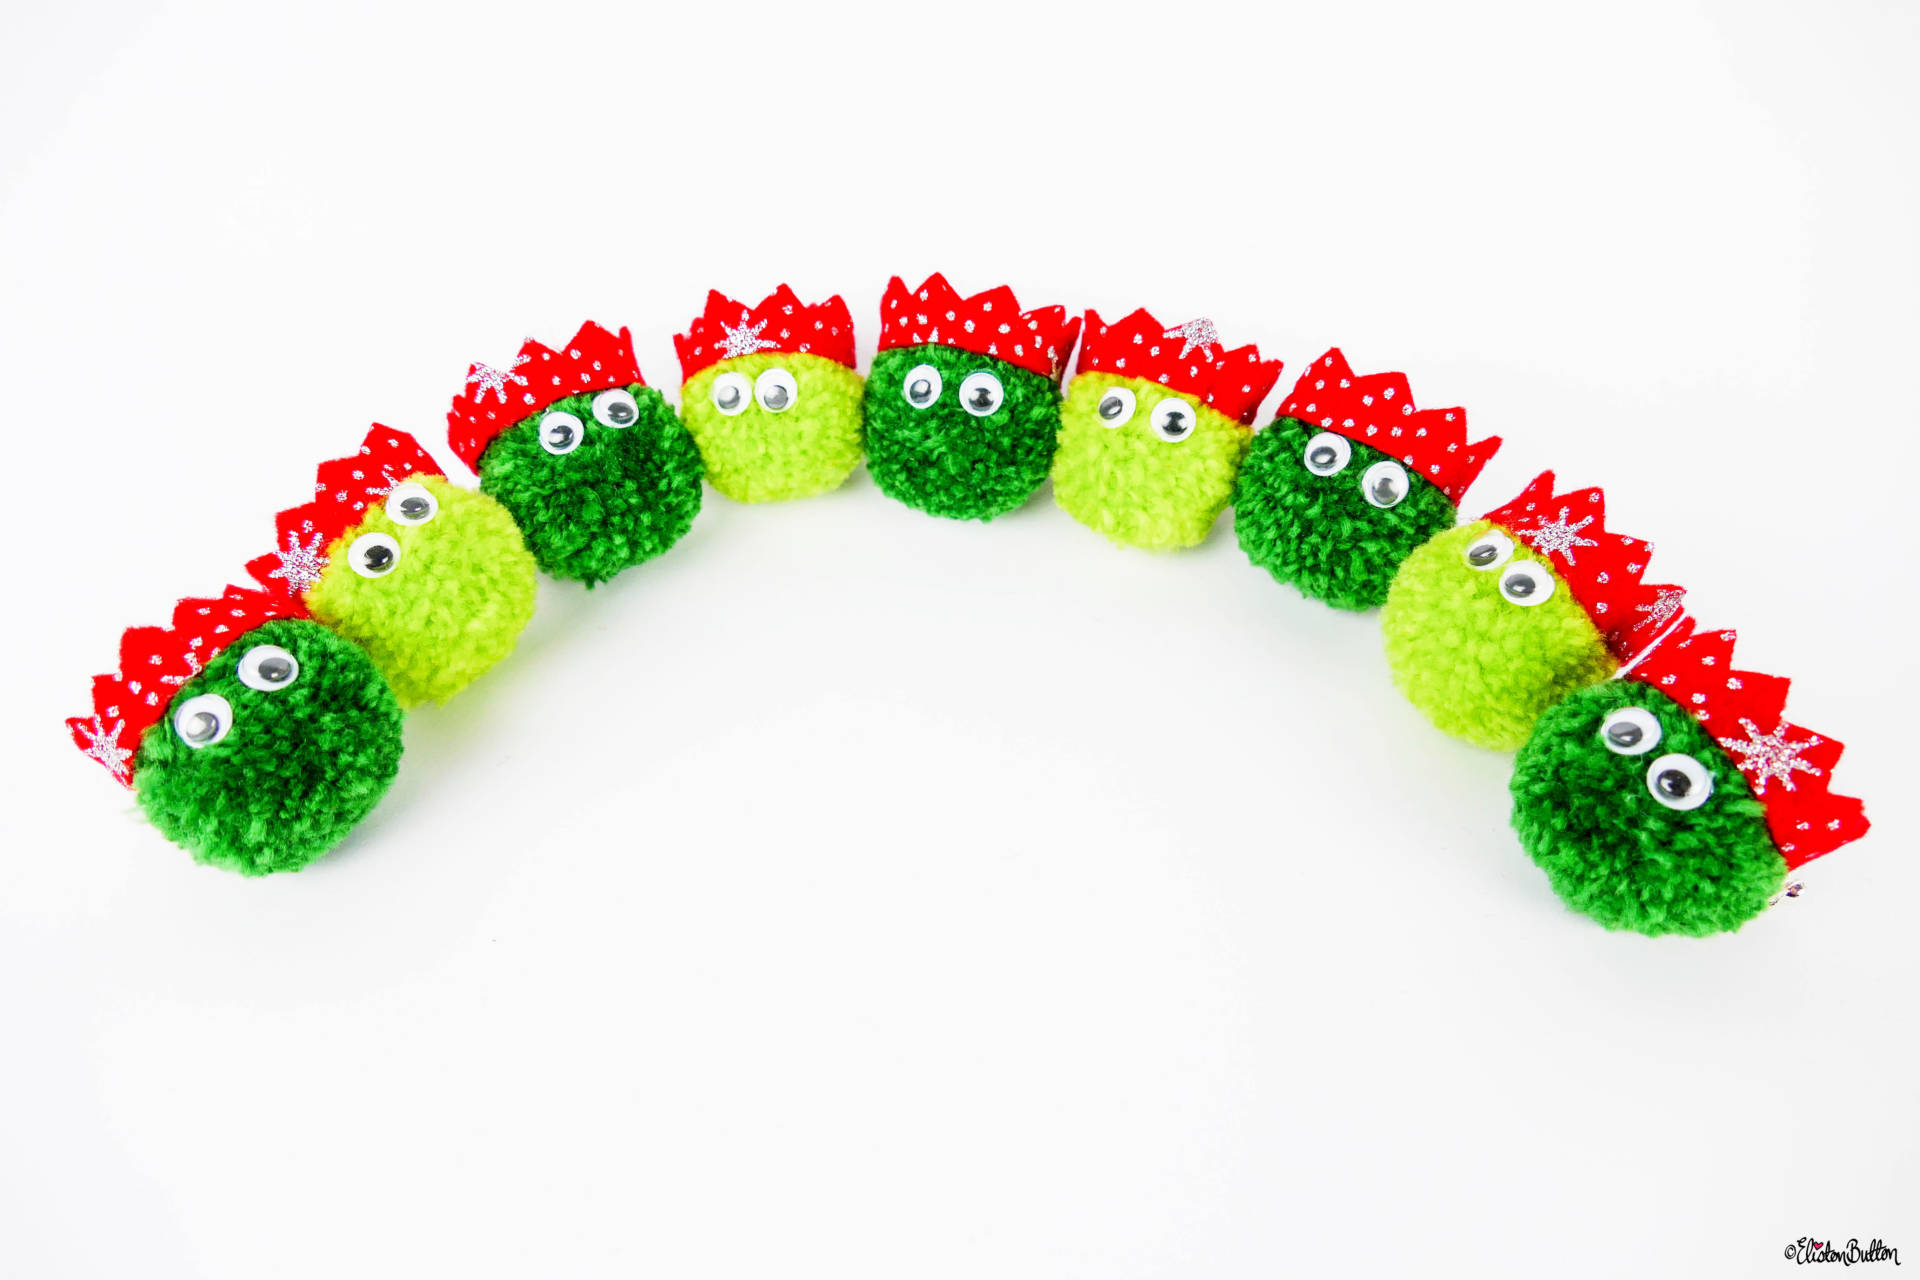 An Arch of Dark and Light Green Christmas Sprout Pom Pom Brooches with Red Glitter Party Hats by Eliston Button - Christmas Sprout Pom Pom Brooches! at www.elistonbutton.com - Eliston Button - That Crafty Kid – Art, Design, Craft & Adventure.